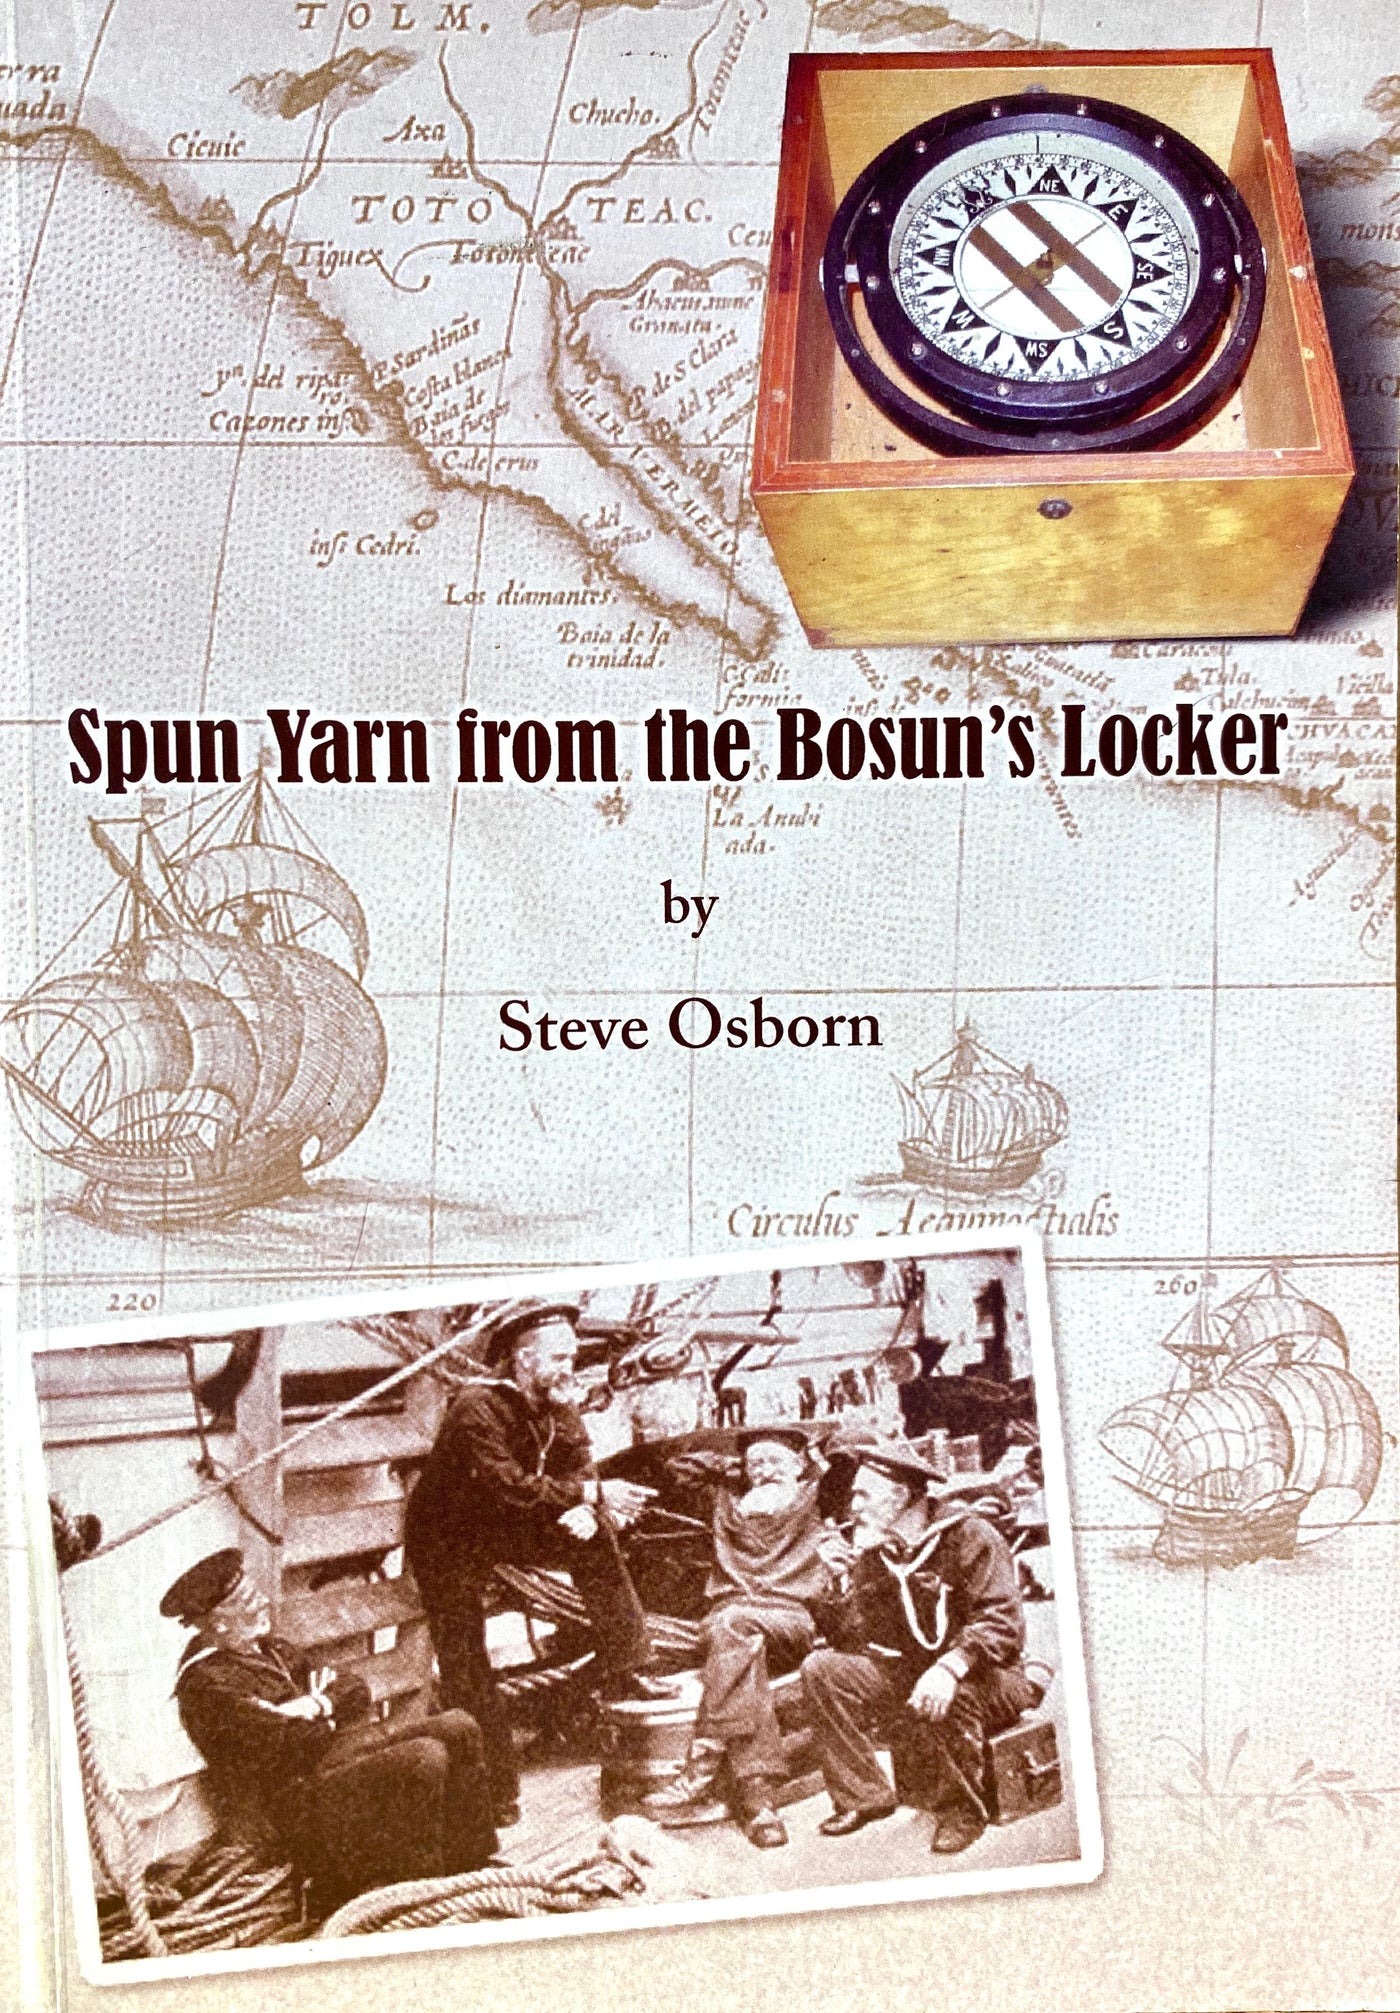 Spun Yarn from the Bosun's Locker